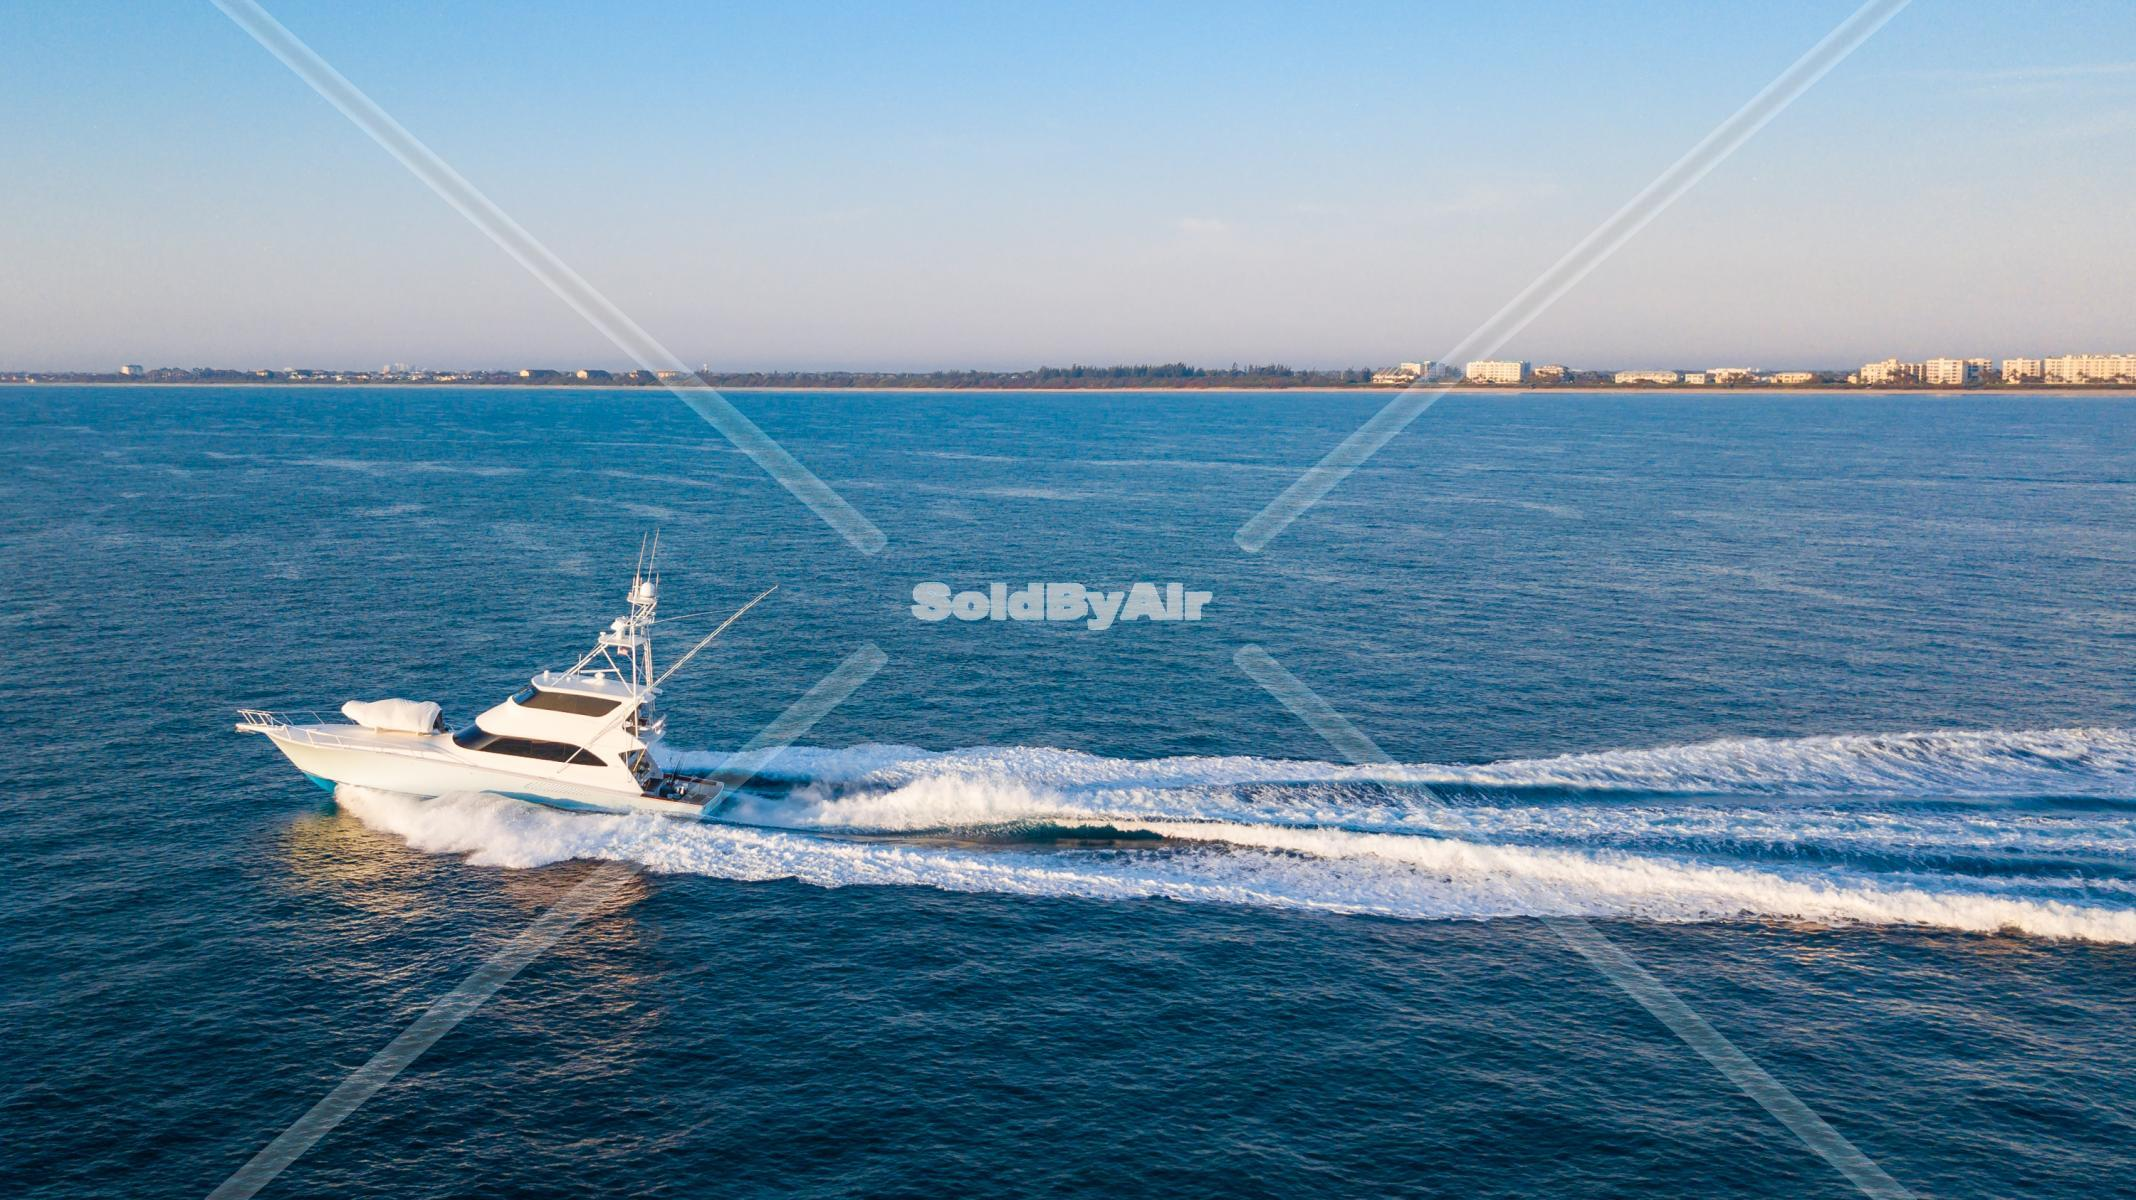 Drone Photo of Boat 1mile offshore  in Jupiter Florida